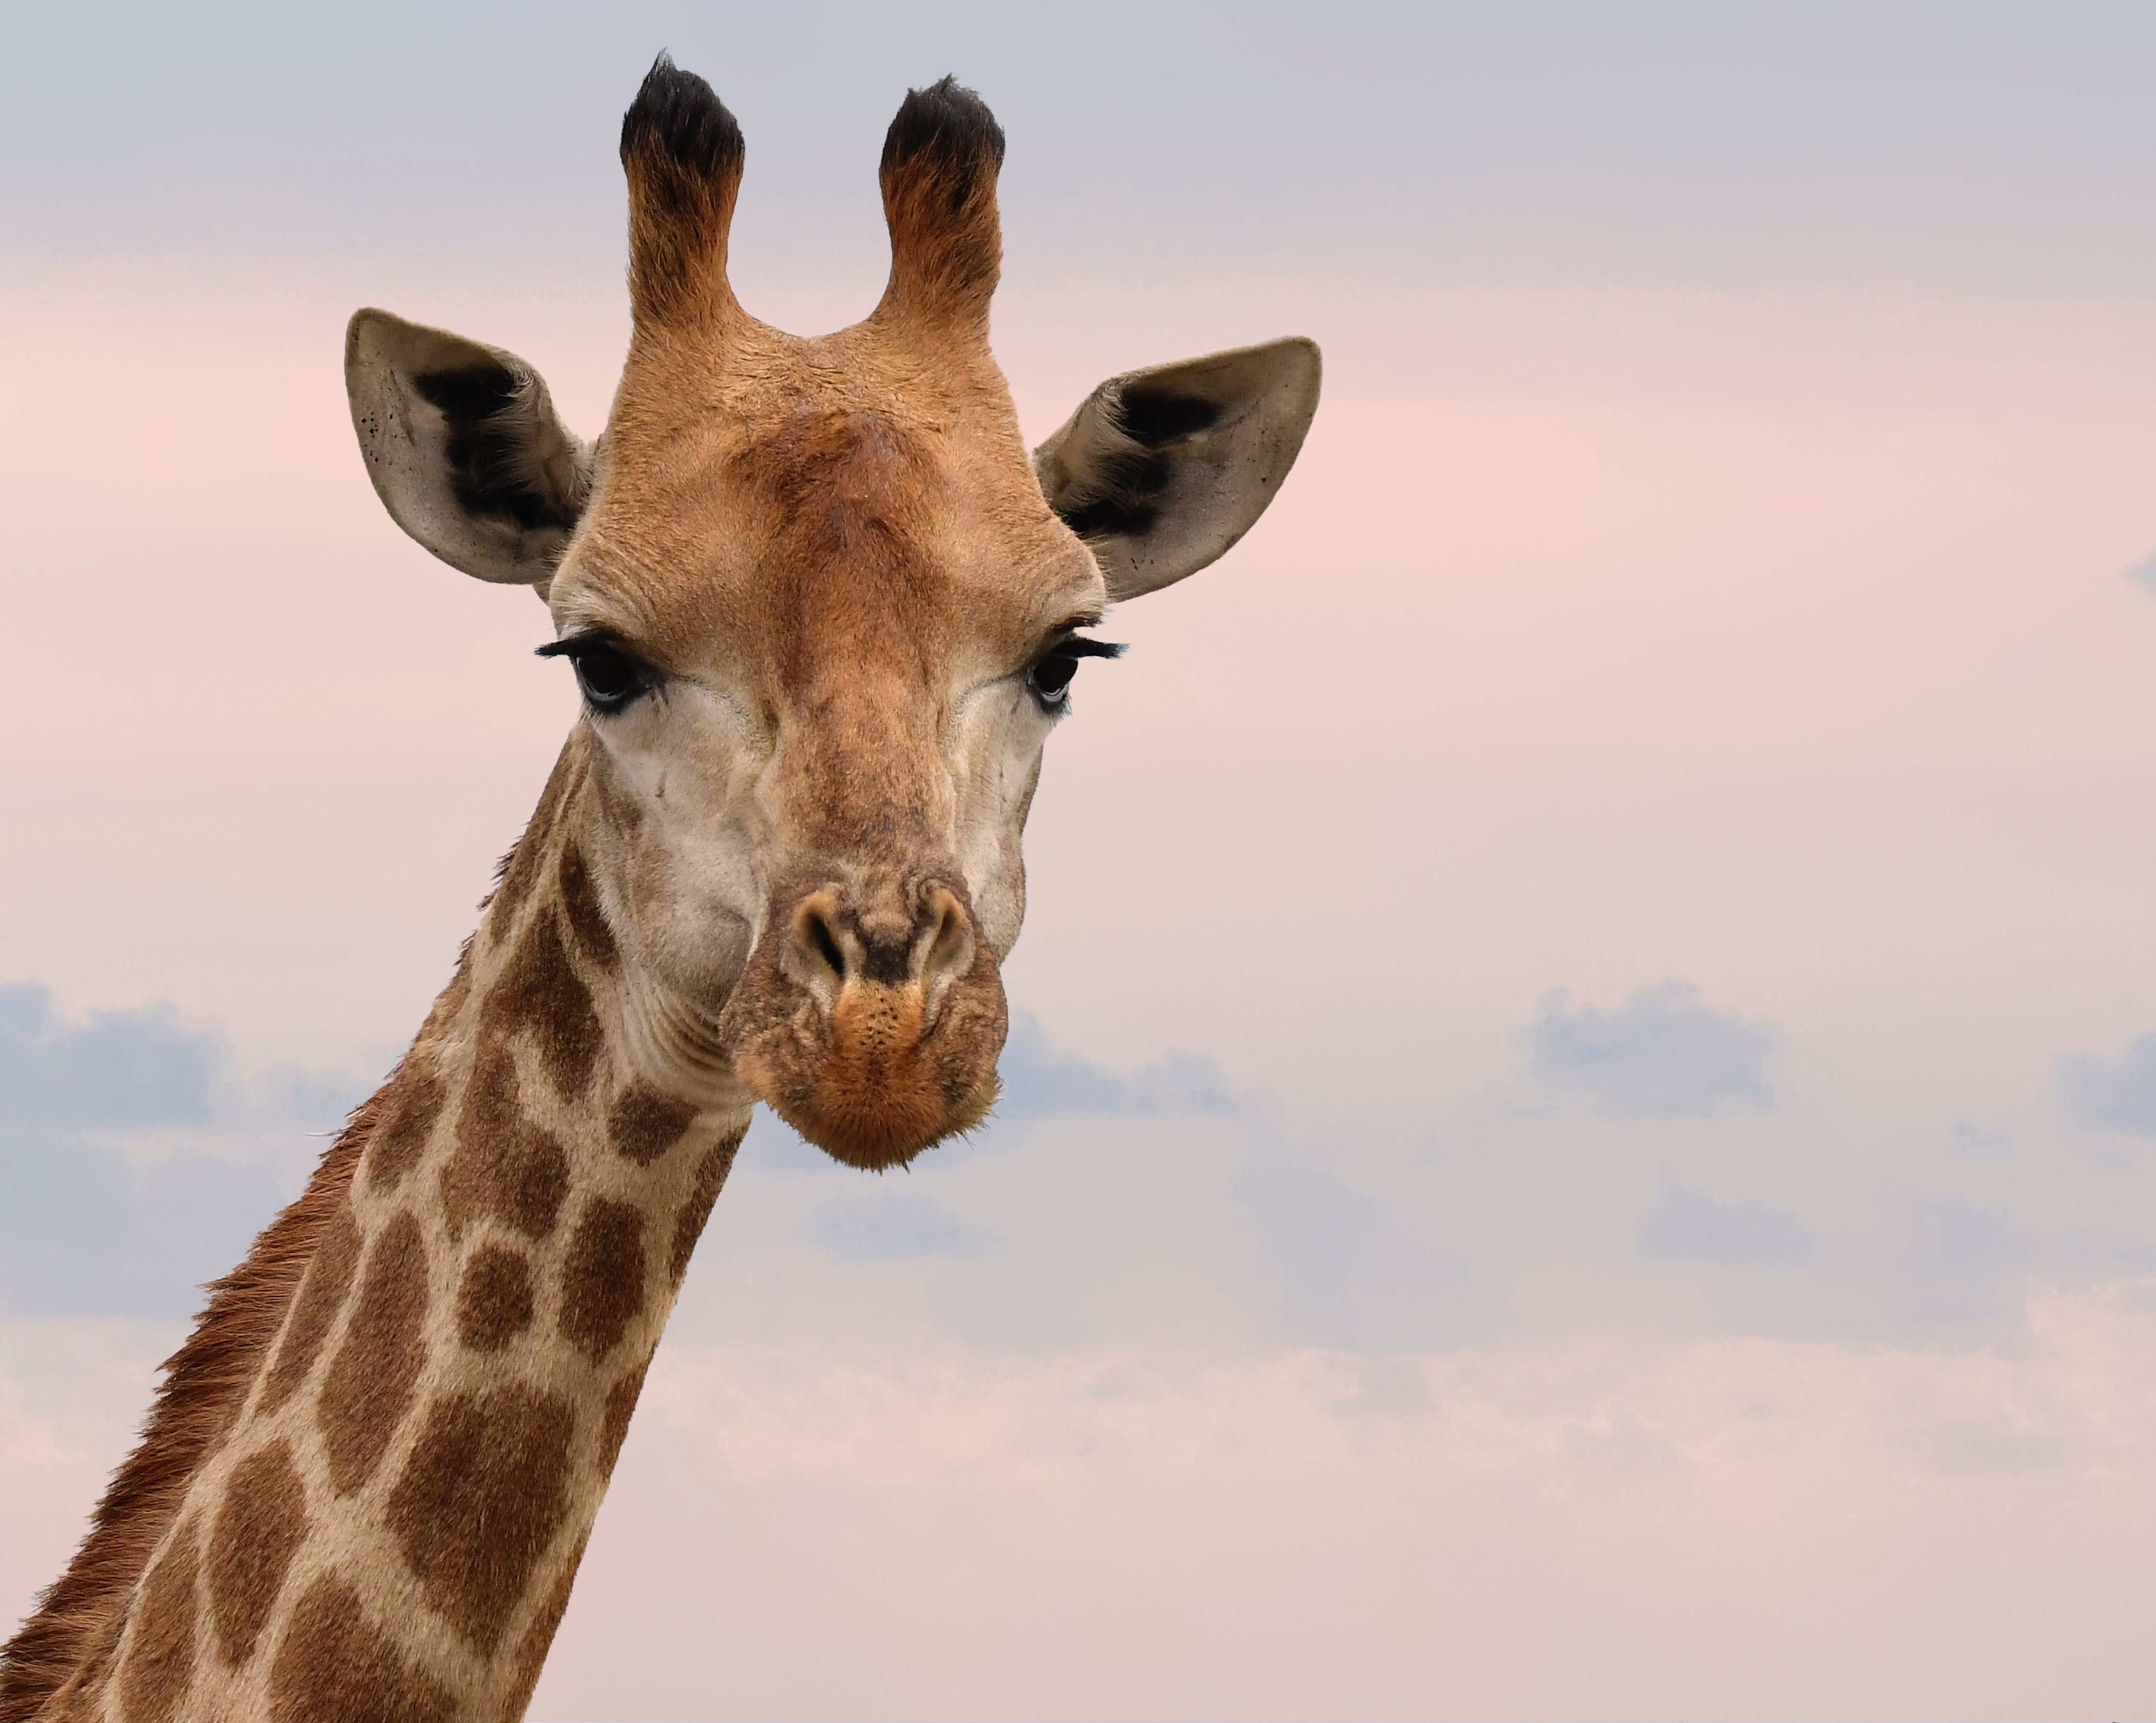 A close up shot of a giraffe's face against a pink and orange cloudy sky at sunset